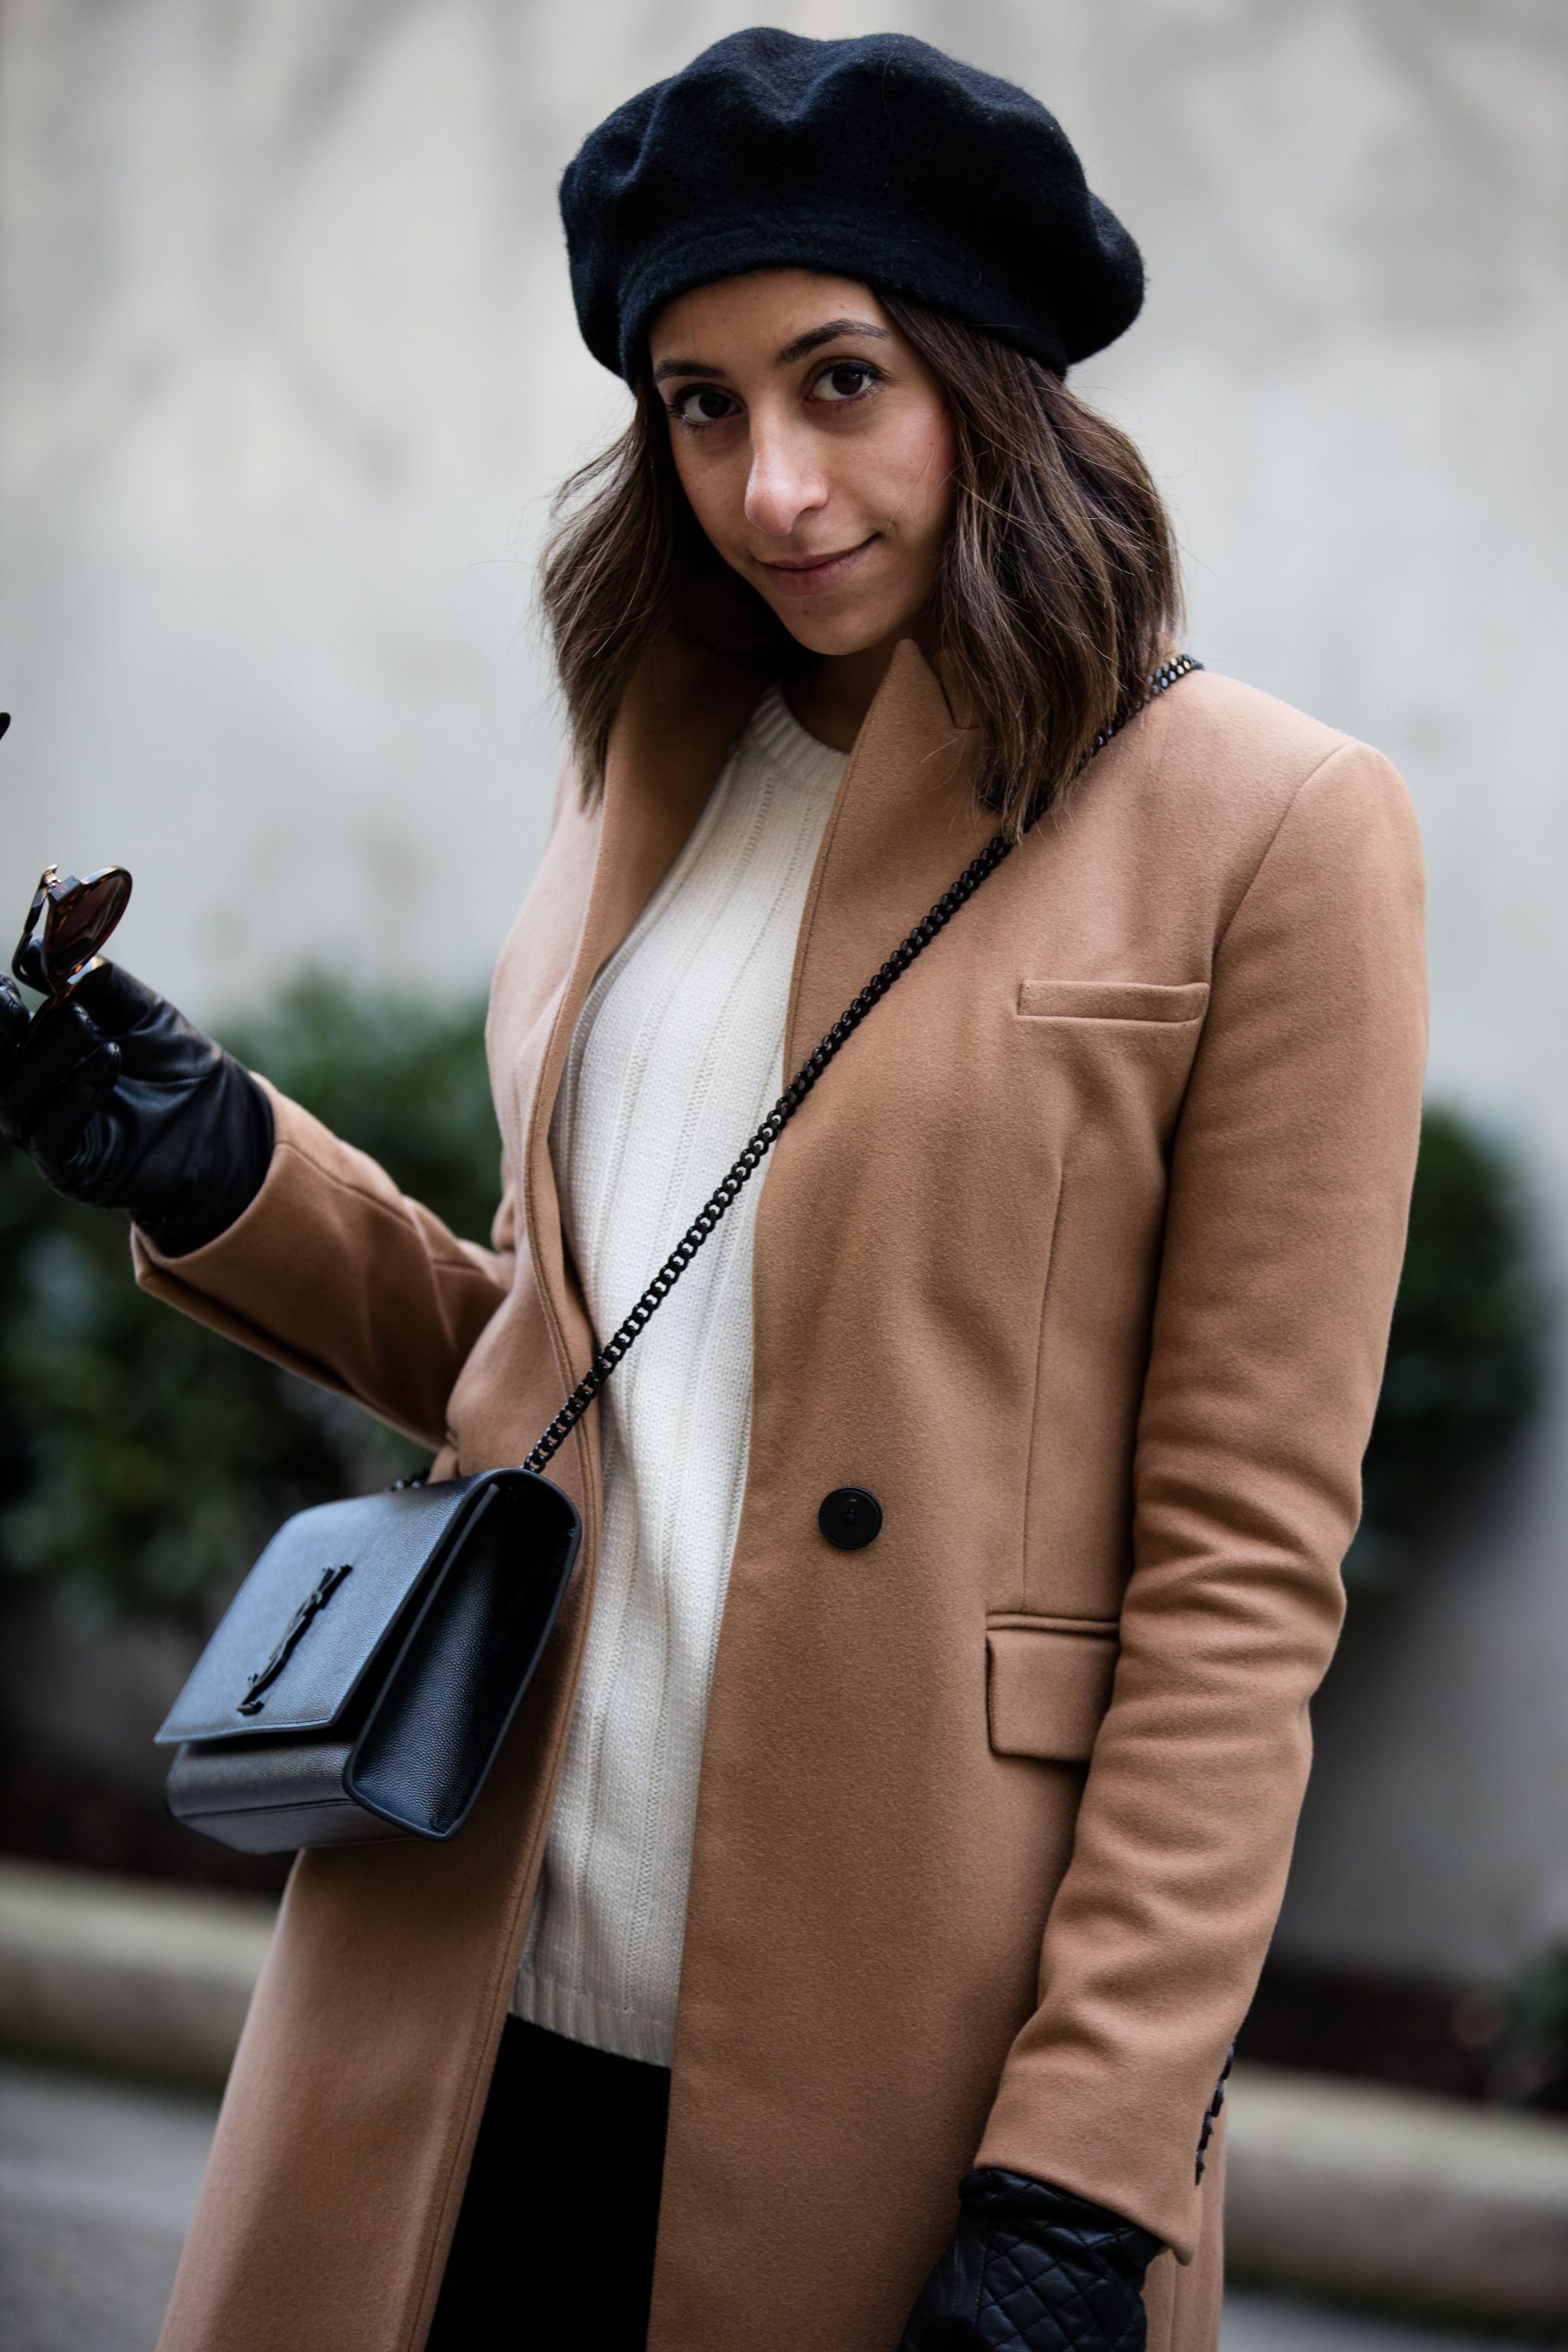 Camel coat, black kylie and kendall booties, black beret, parisian style,  fashion blogger, style blogger, ...